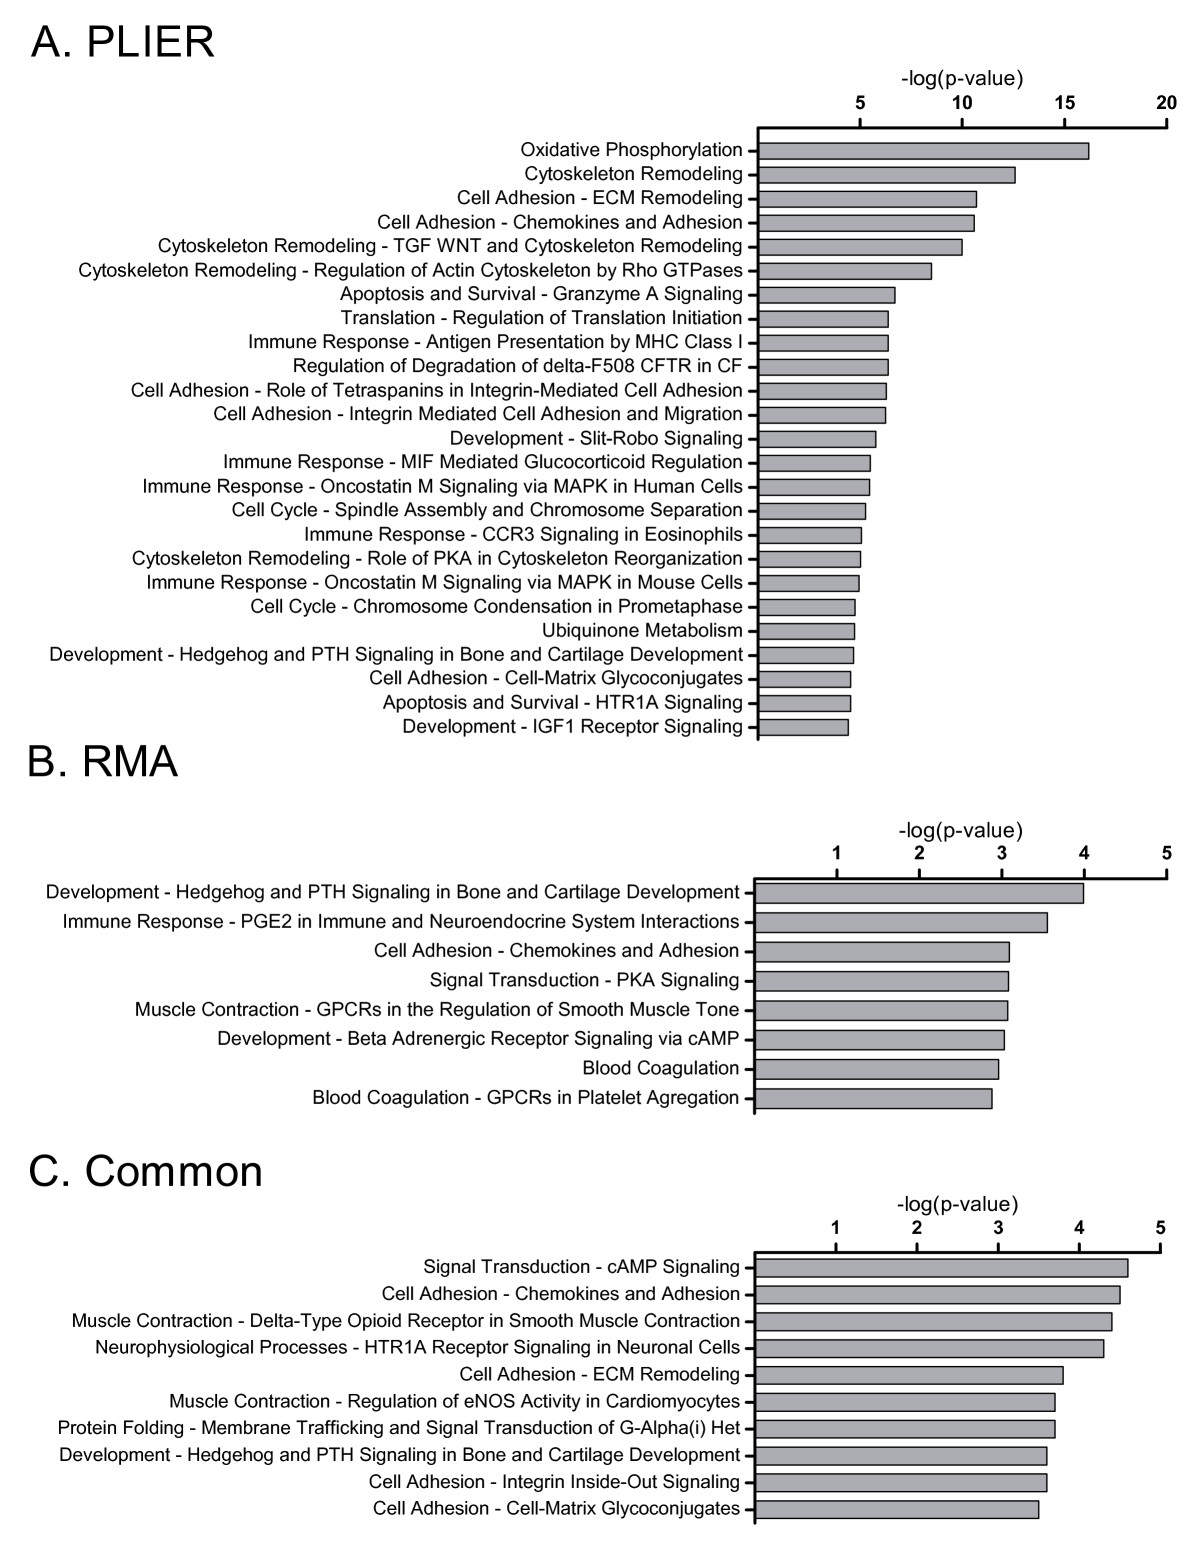 http://static-content.springer.com/image/art%3A10.1186%2F1471-2407-10-506/MediaObjects/12885_2010_Article_2305_Fig3_HTML.jpg